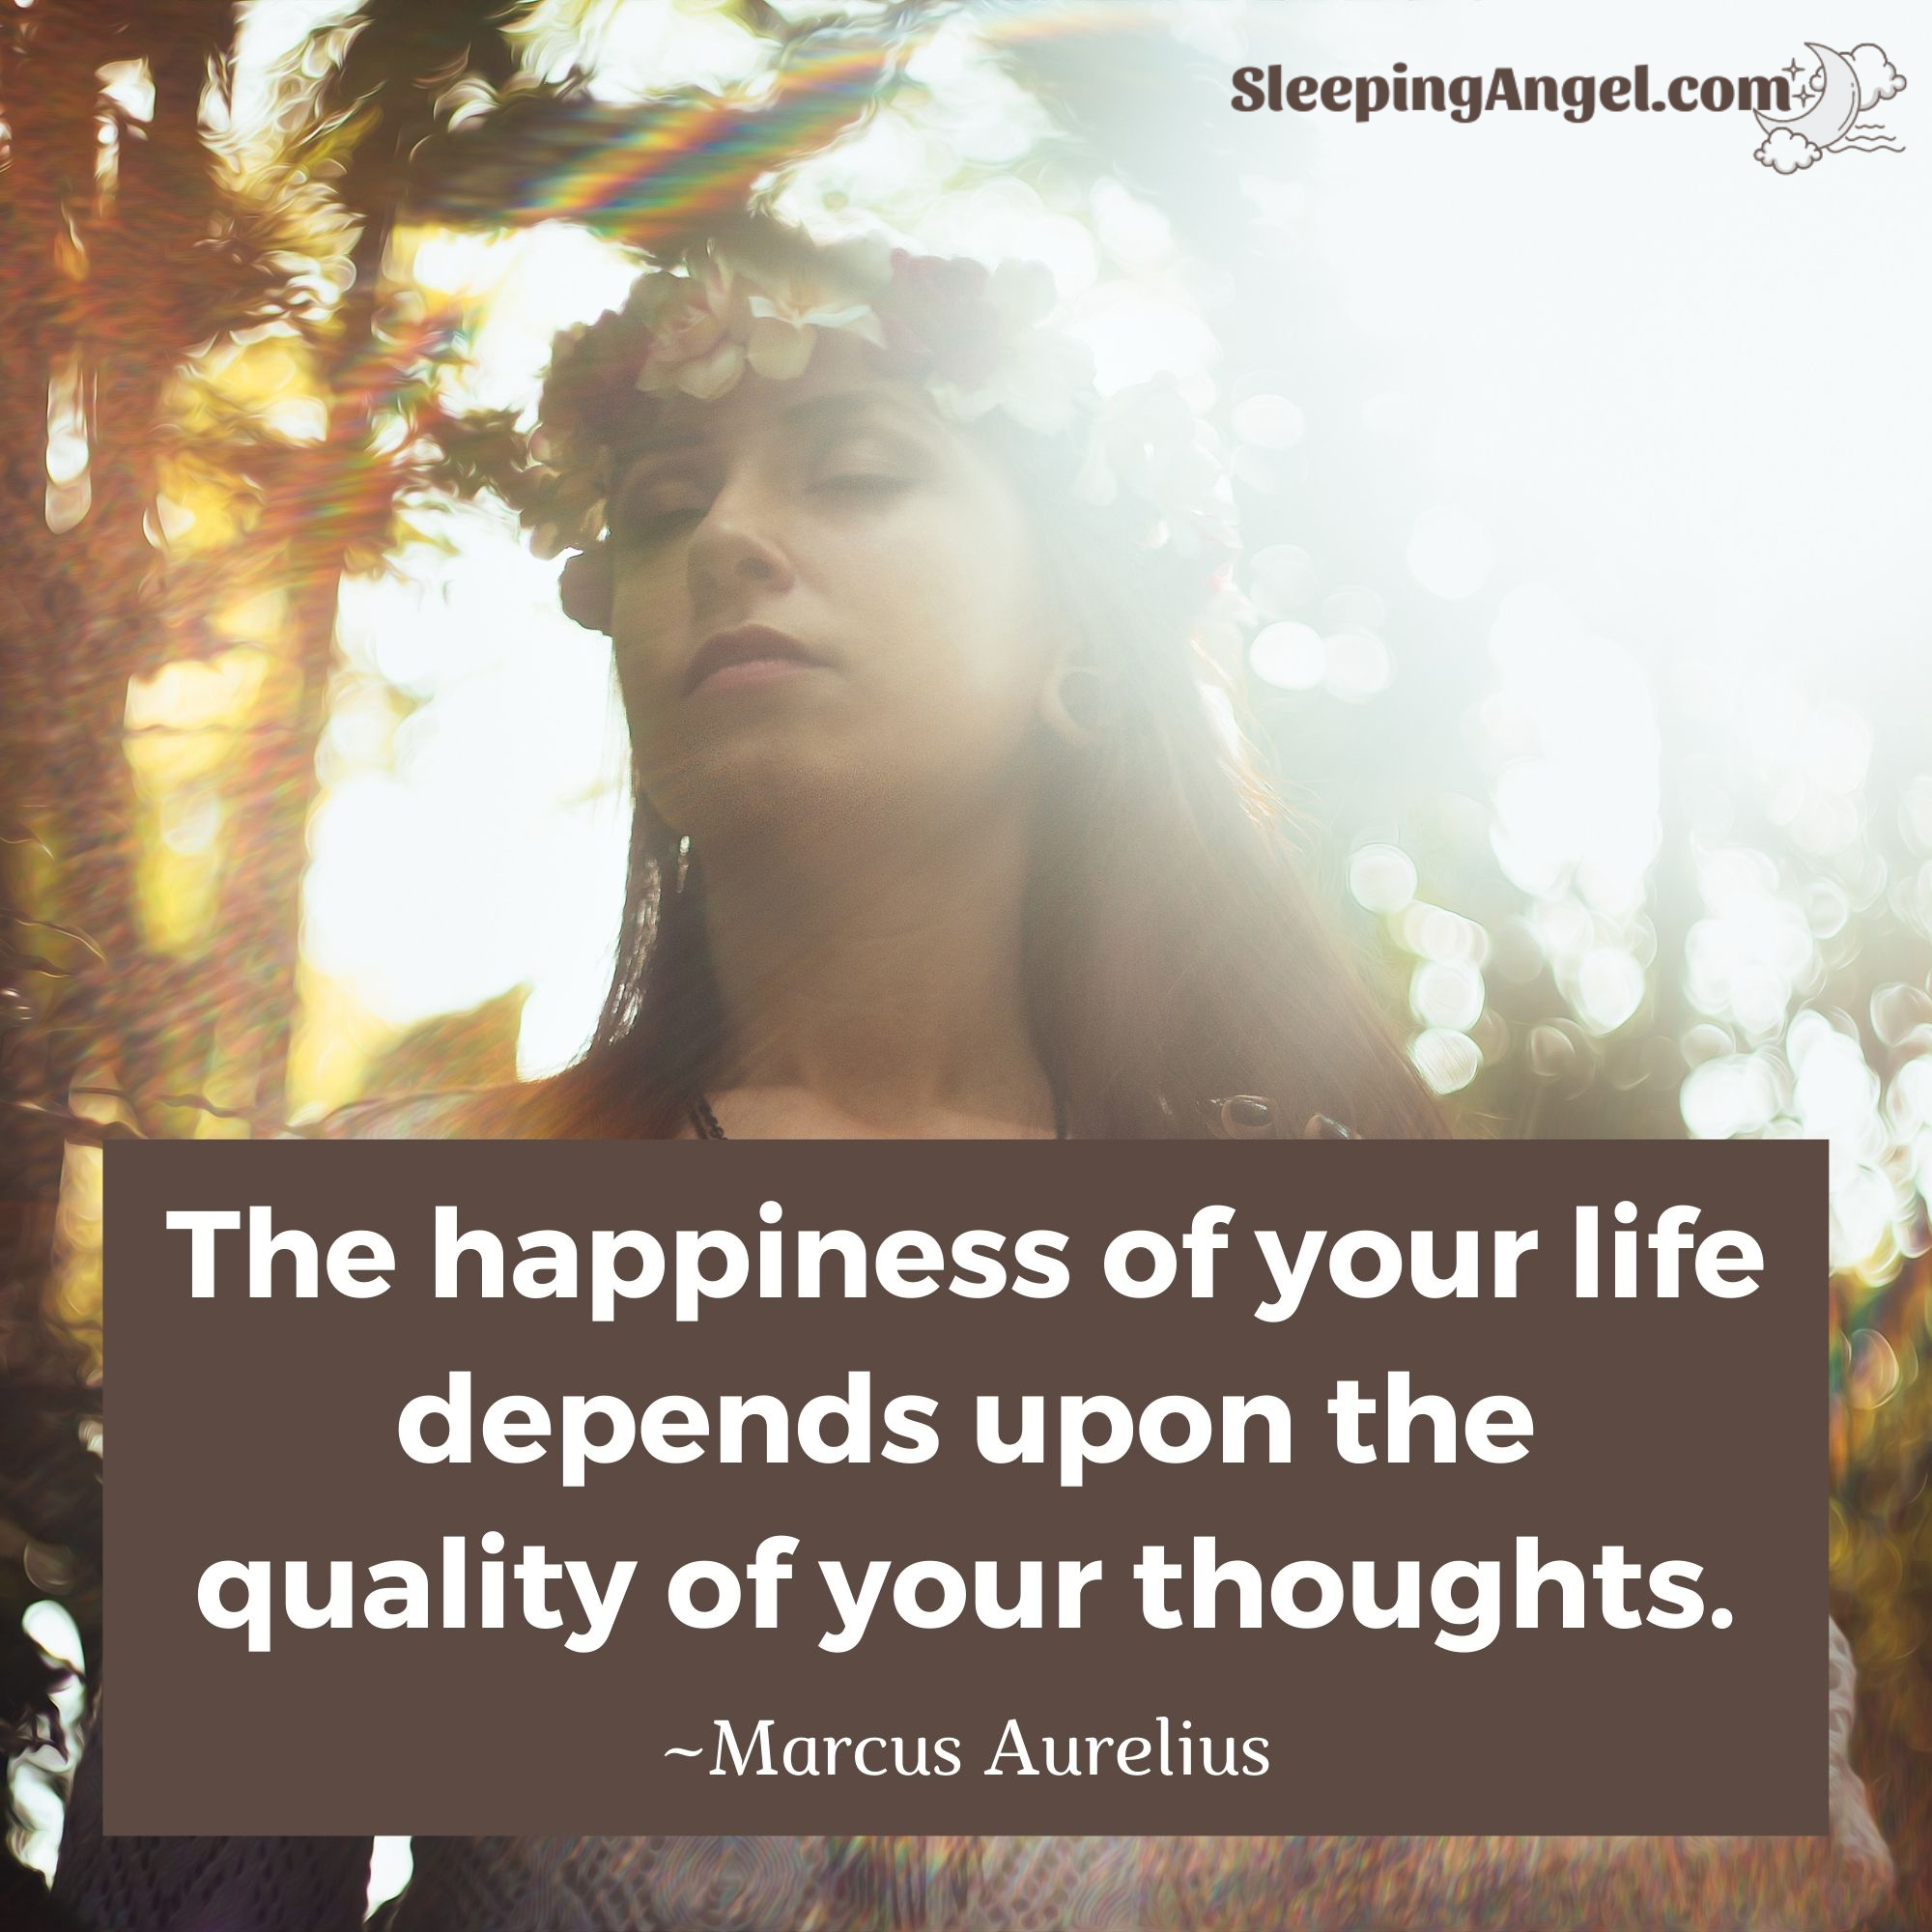 Power of Thoughts Quote